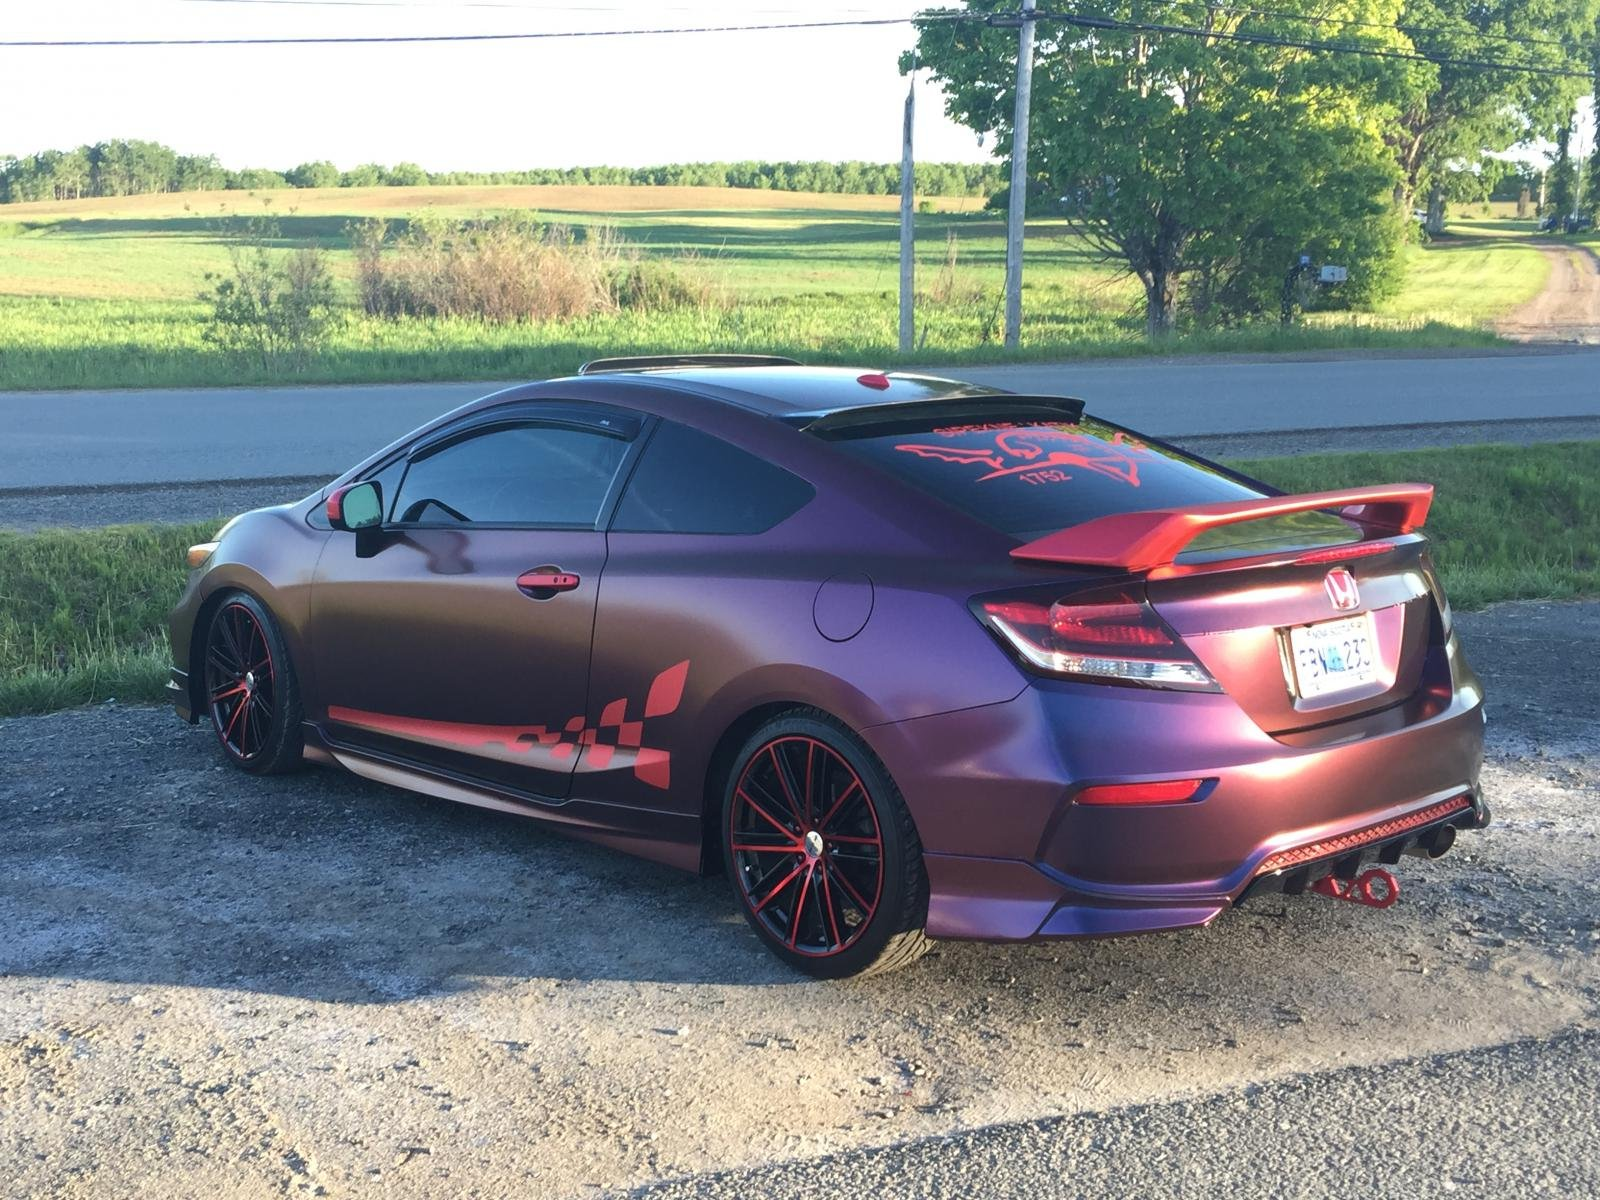 2014 honda civic si 4 toned chameleon wrap. Black Bedroom Furniture Sets. Home Design Ideas